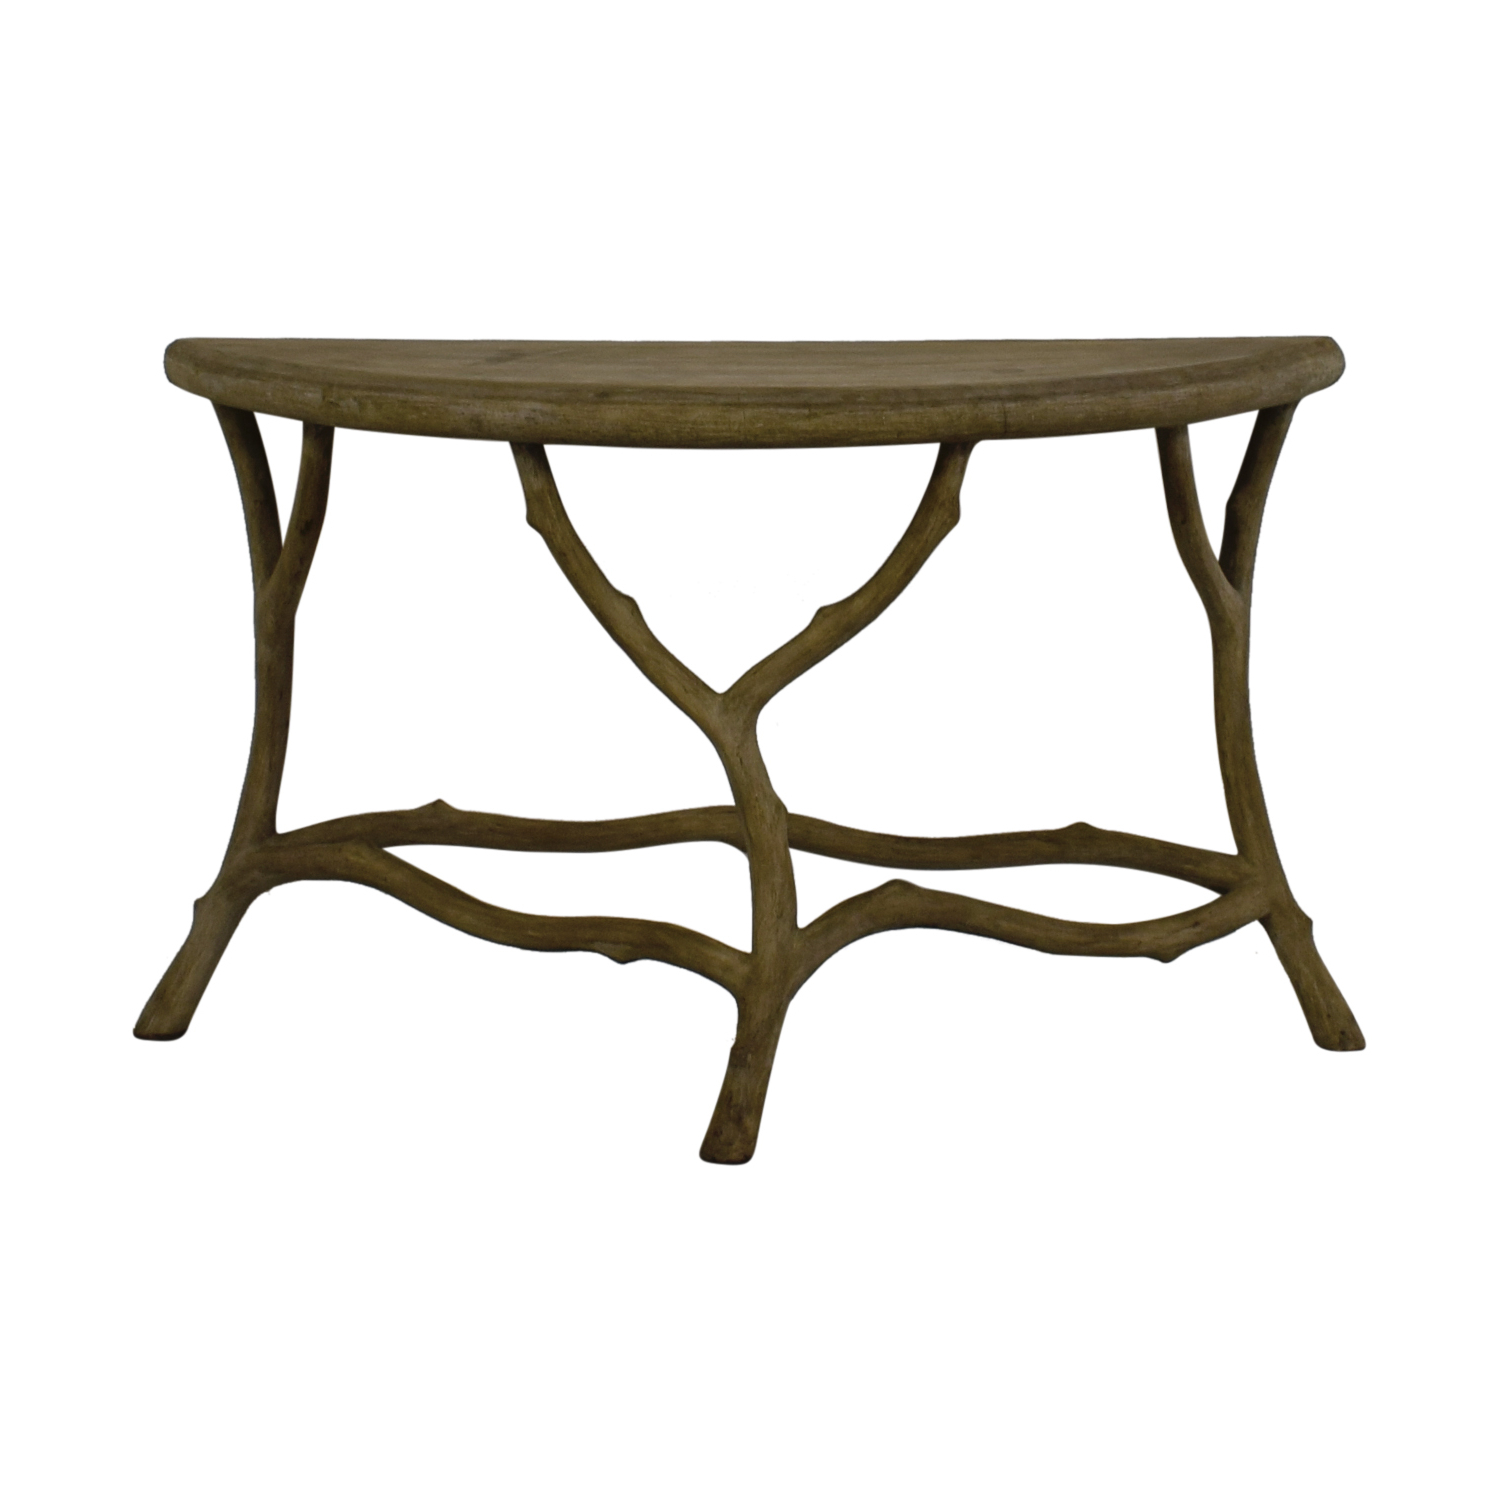 [%90% Off – Horchow Horchow Grey Faux Bois Half Table / Tables In Well Known Faux Bois Coffee Tables|Faux Bois Coffee Tables Throughout Popular 90% Off – Horchow Horchow Grey Faux Bois Half Table / Tables|Fashionable Faux Bois Coffee Tables Pertaining To 90% Off – Horchow Horchow Grey Faux Bois Half Table / Tables|Most Current 90% Off – Horchow Horchow Grey Faux Bois Half Table / Tables Within Faux Bois Coffee Tables%] (View 1 of 20)